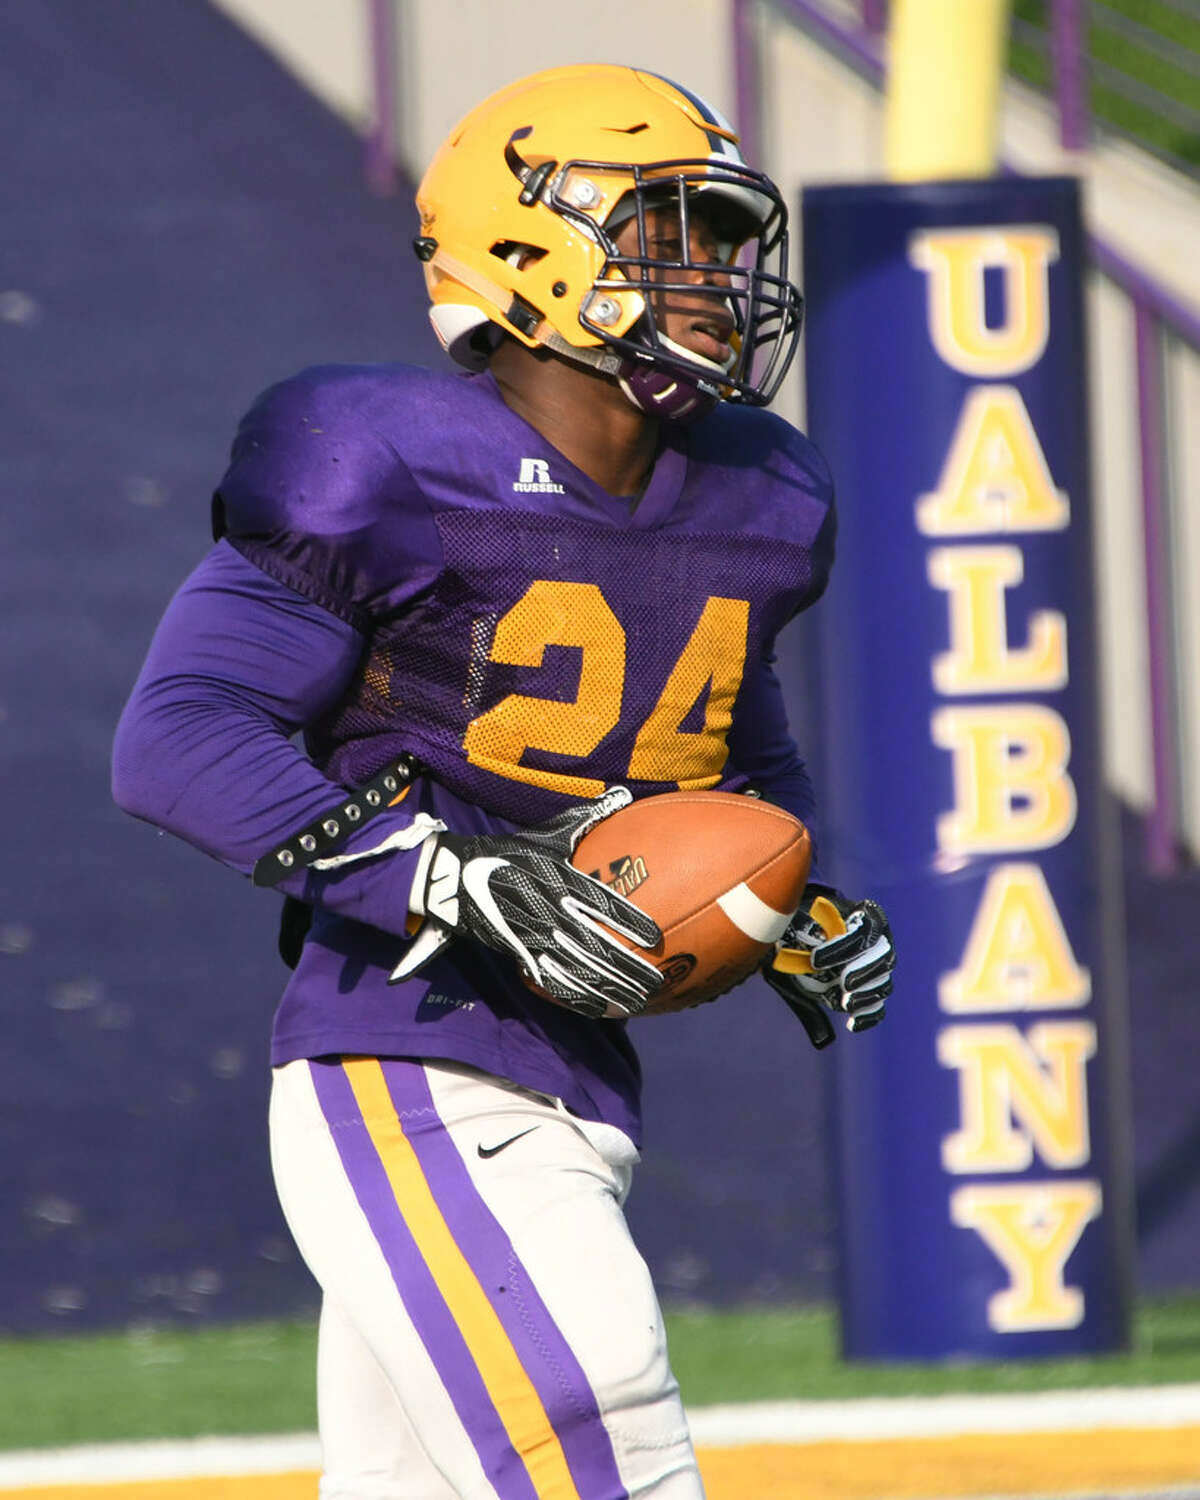 UAlbany's Elijah Ibitokun-Hanks rushed for 63 yards and a touchdown in his season debut on Saturday. (Lori Van Buren/Times Union)